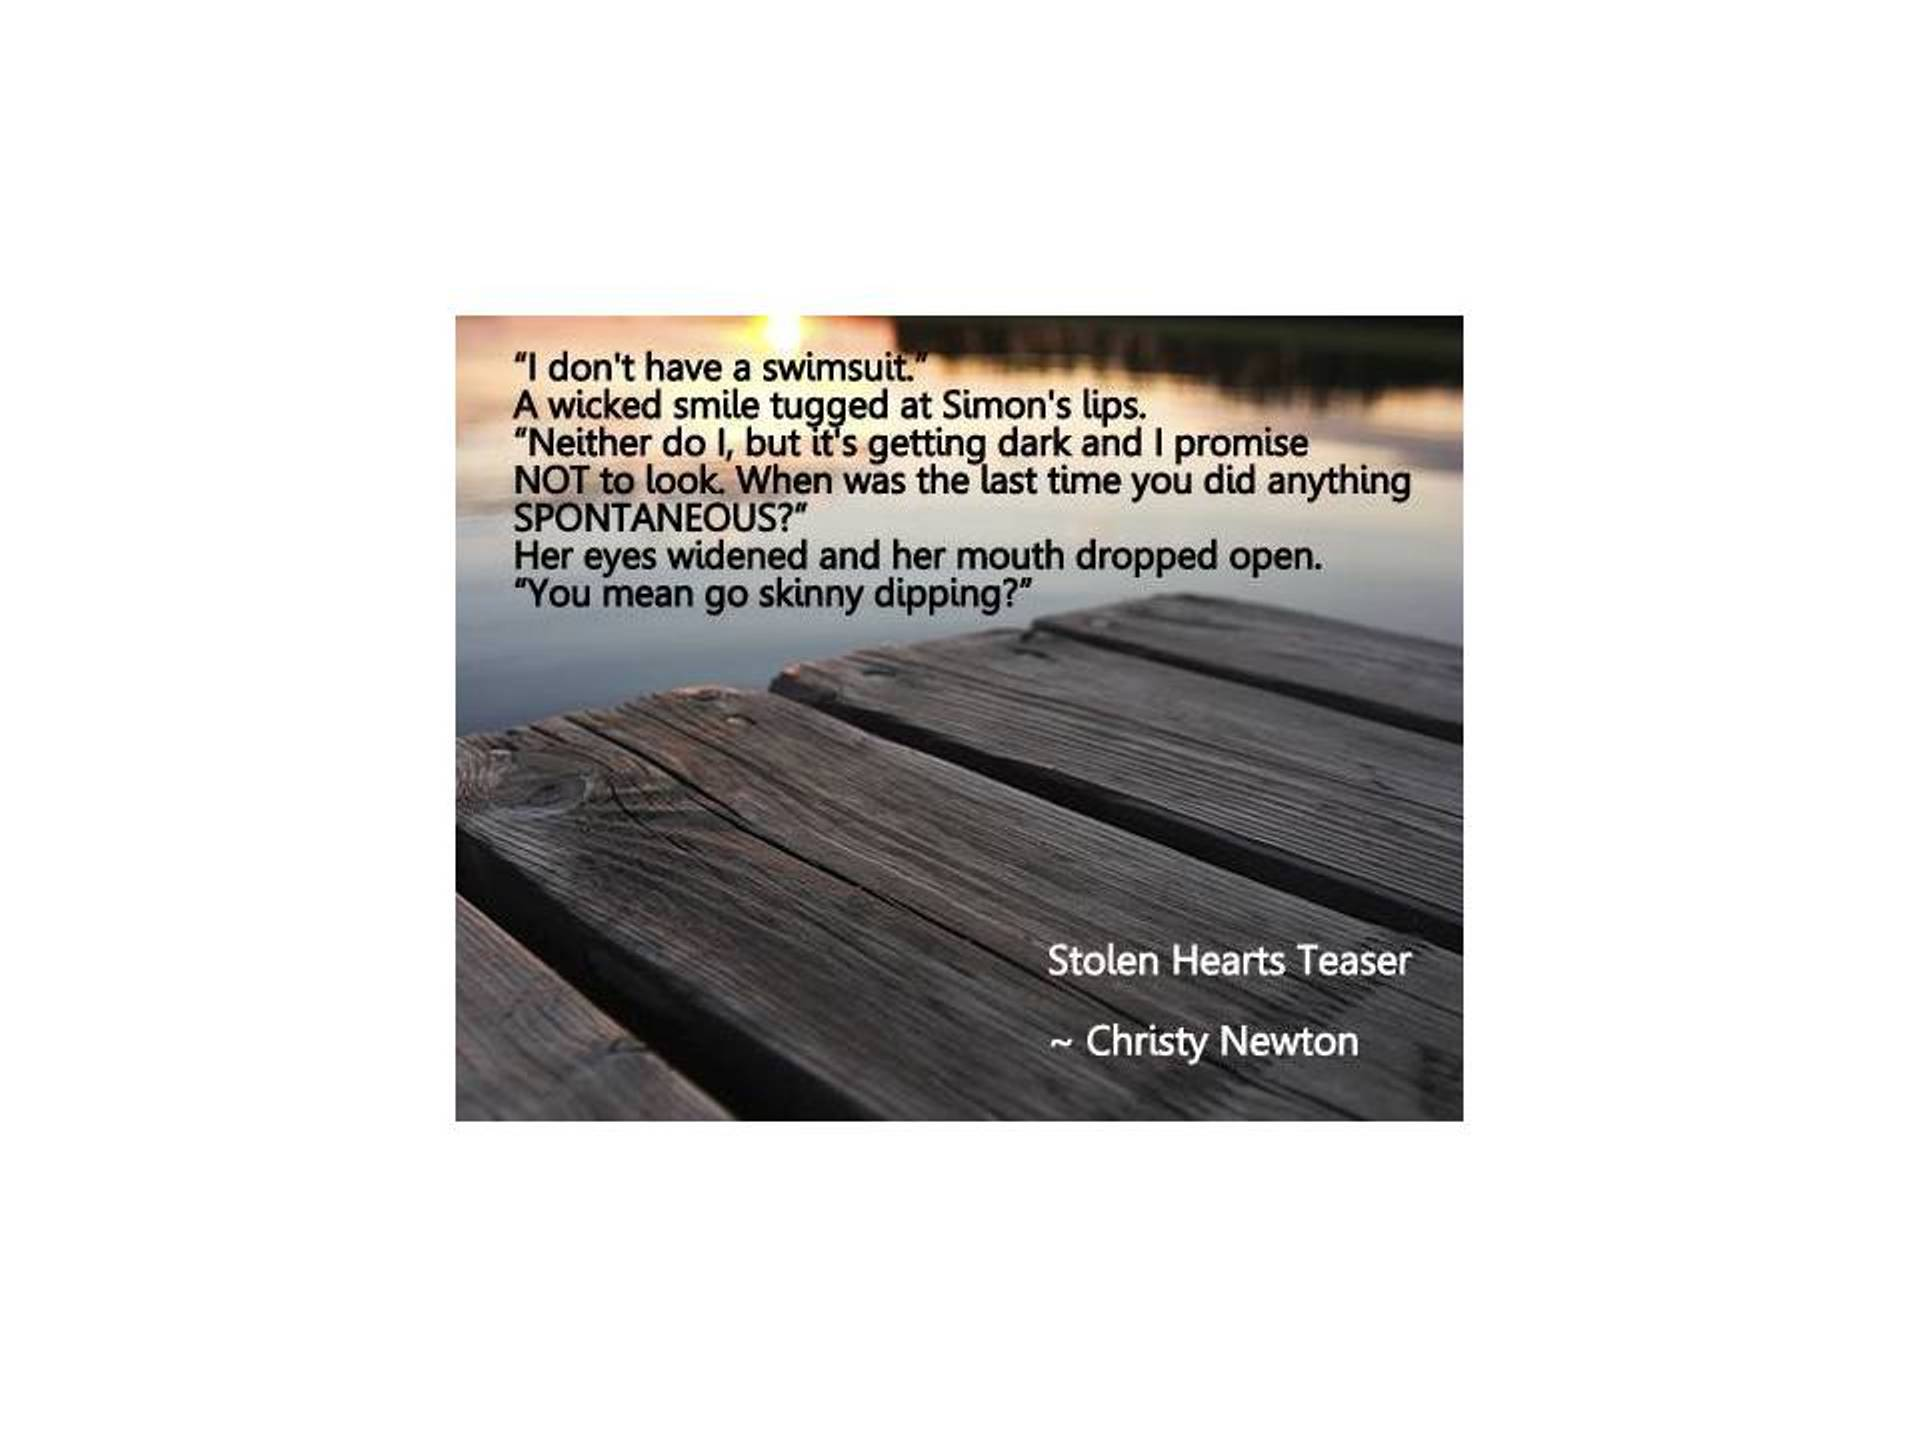 Stolen Hearts Teaser Christy Newton